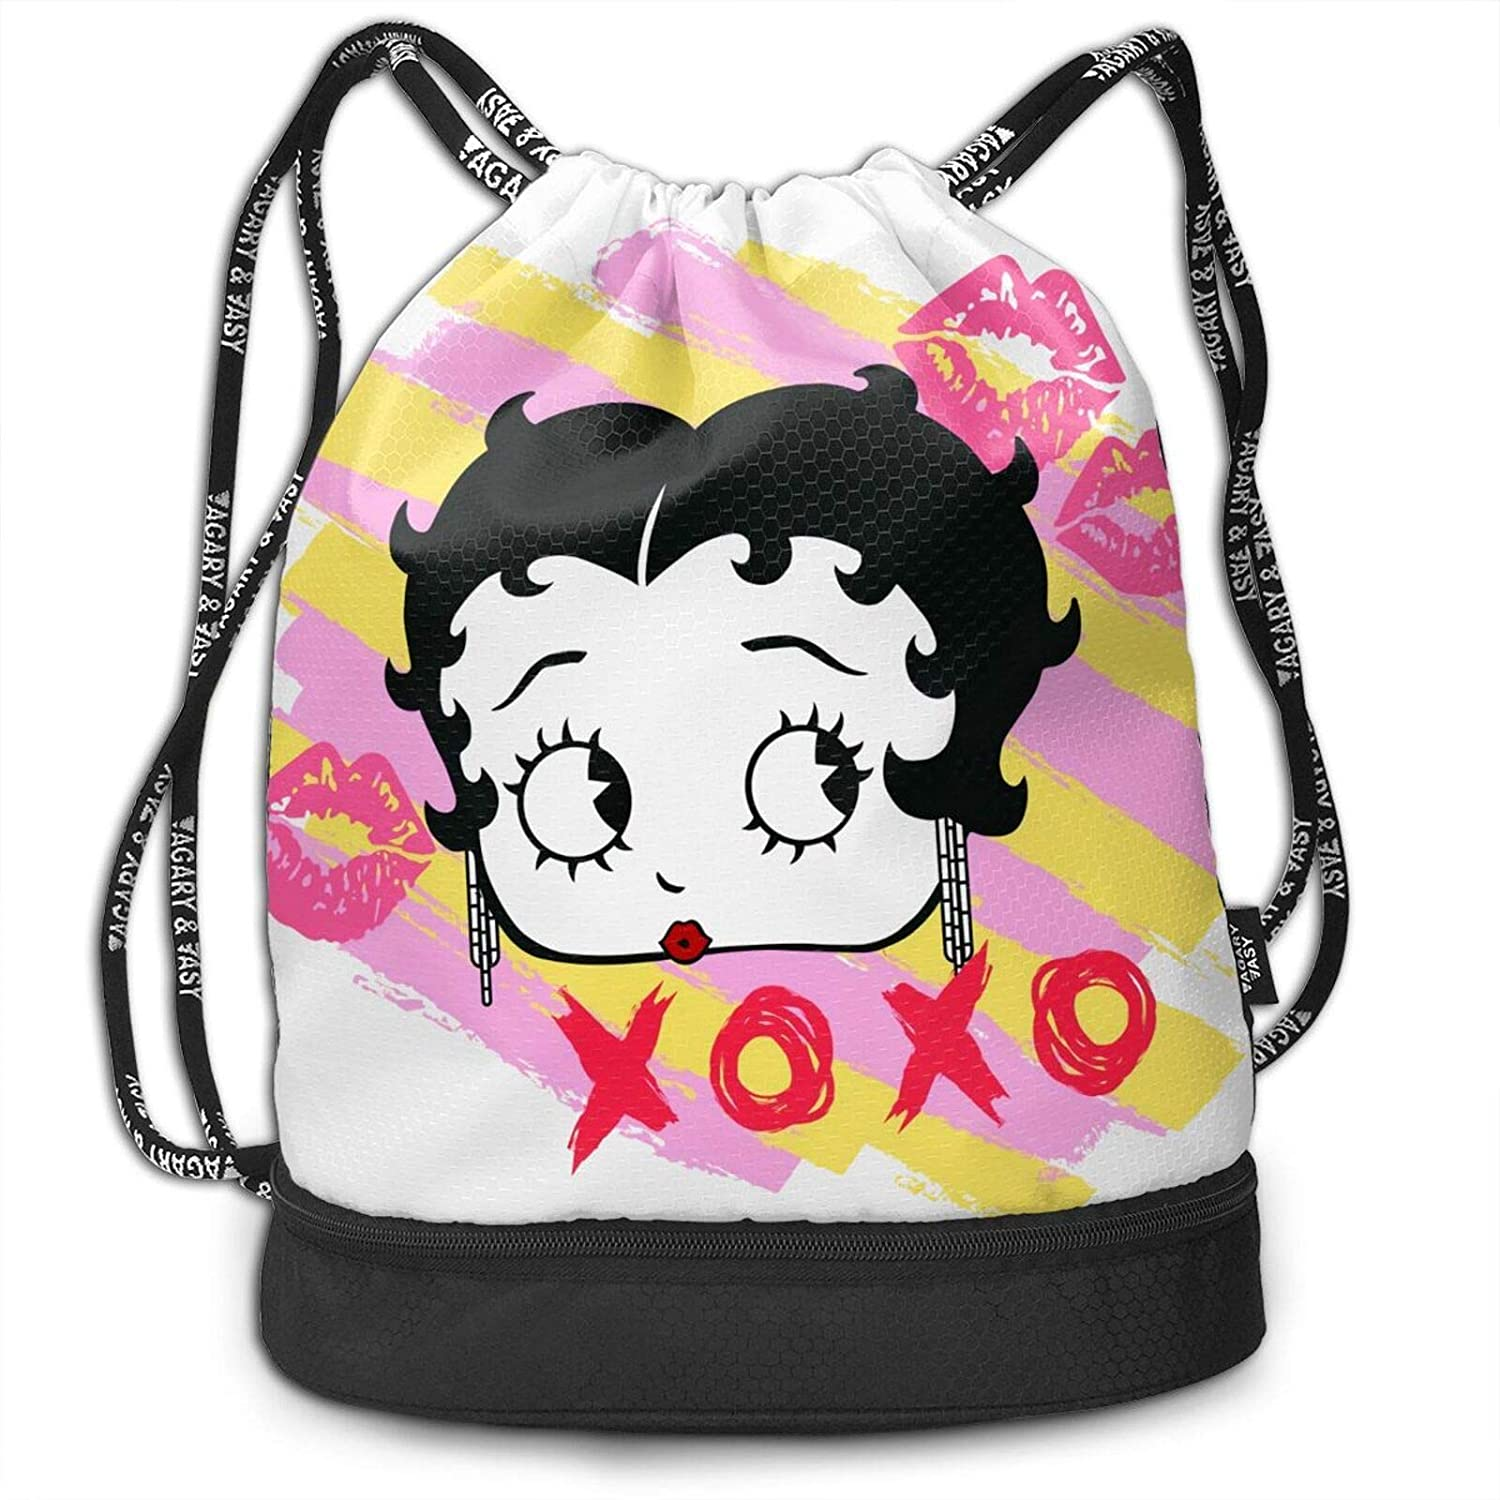 Fashion Boutique Be-Tty Boop Unisex Bundled Backpack Leisure Backpack